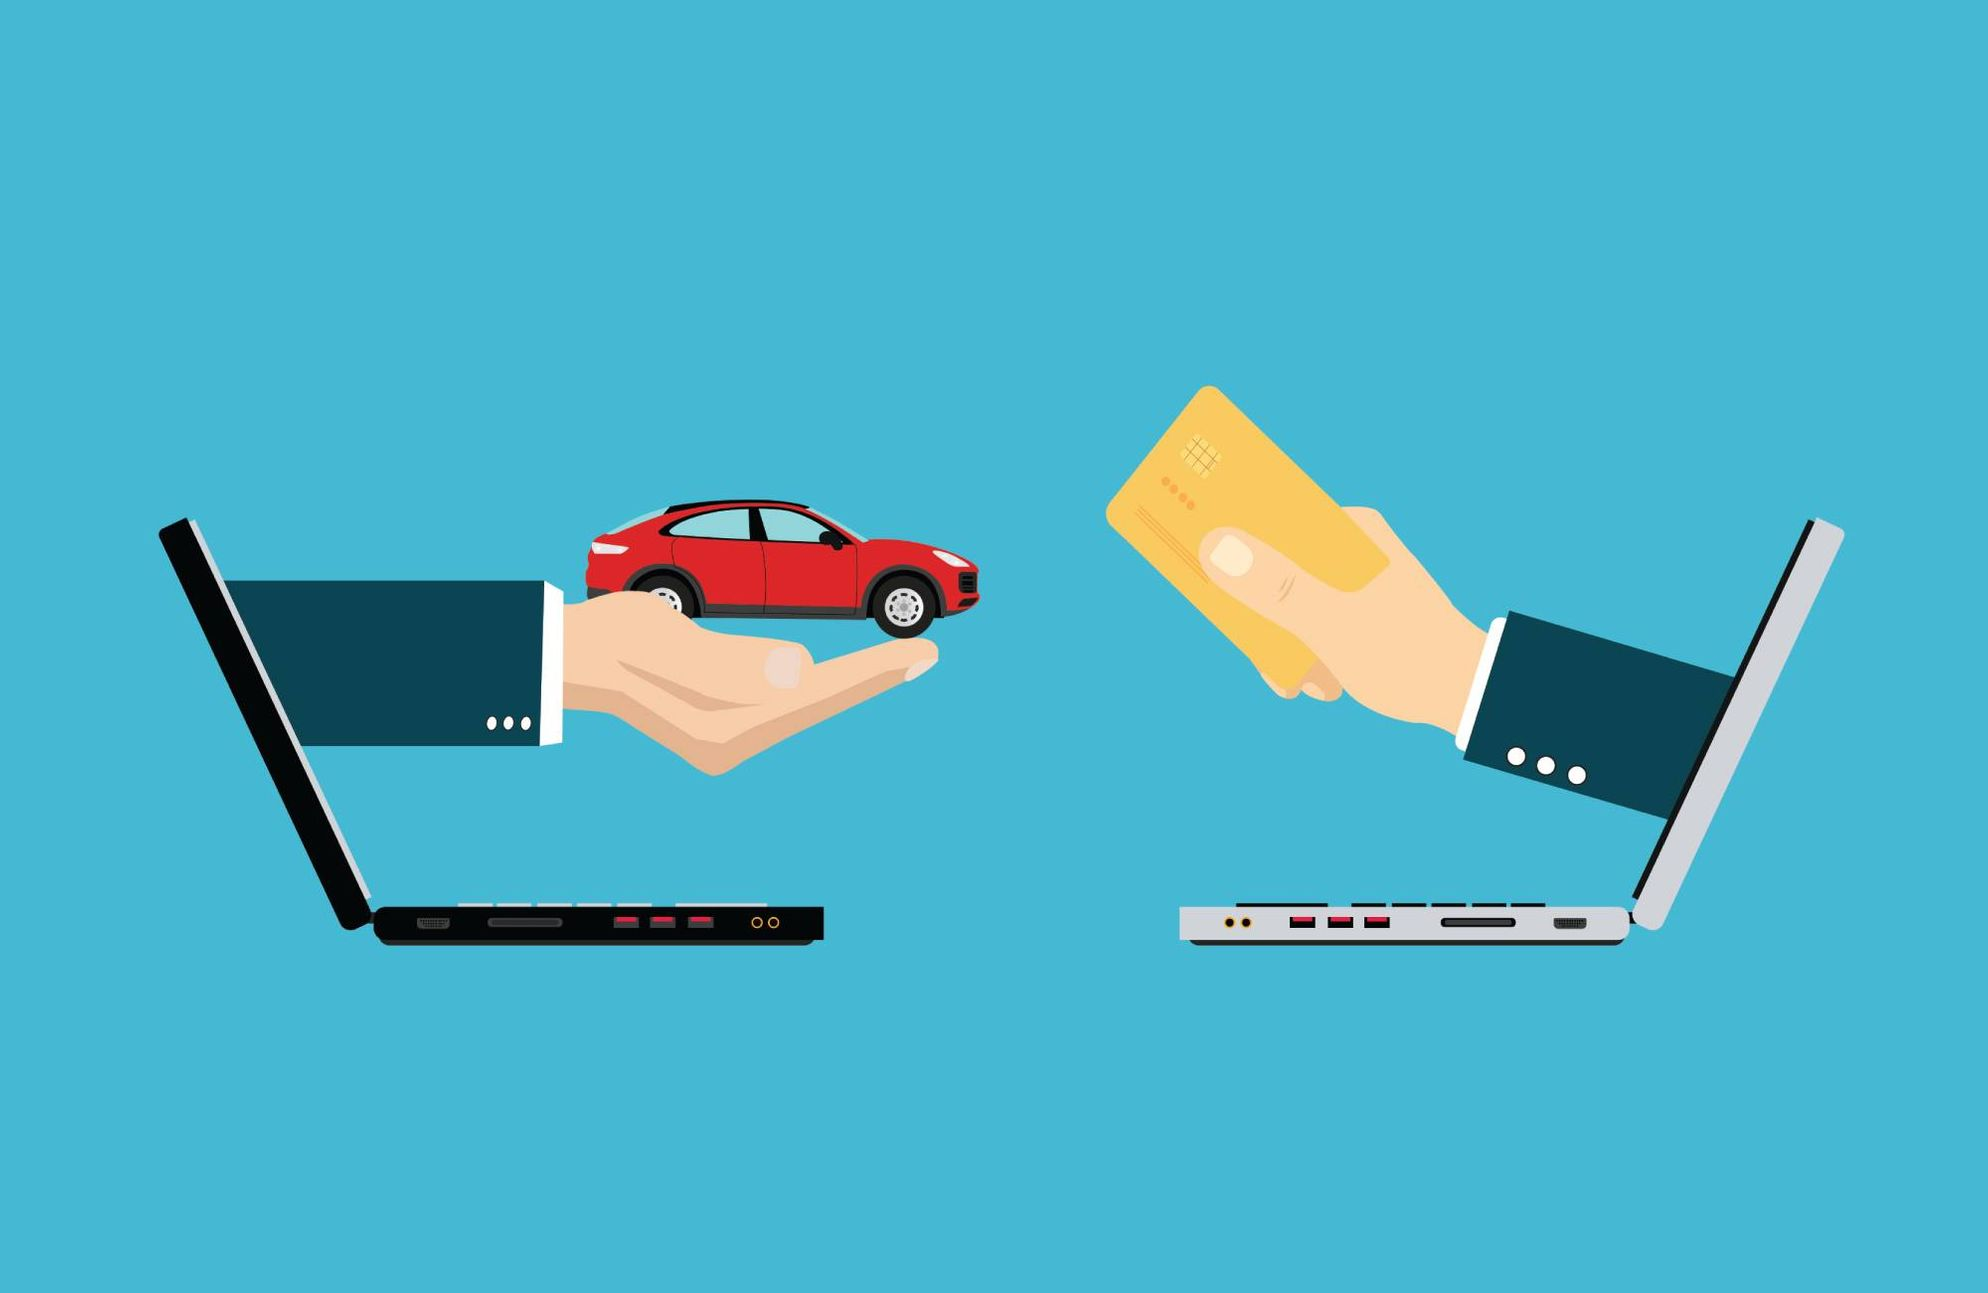 Illustration of a hand coming out of a laptop holding a car and a hand coming out of a second laptop, holding a credit card. Rewire PBS Money Virtual Car Buying